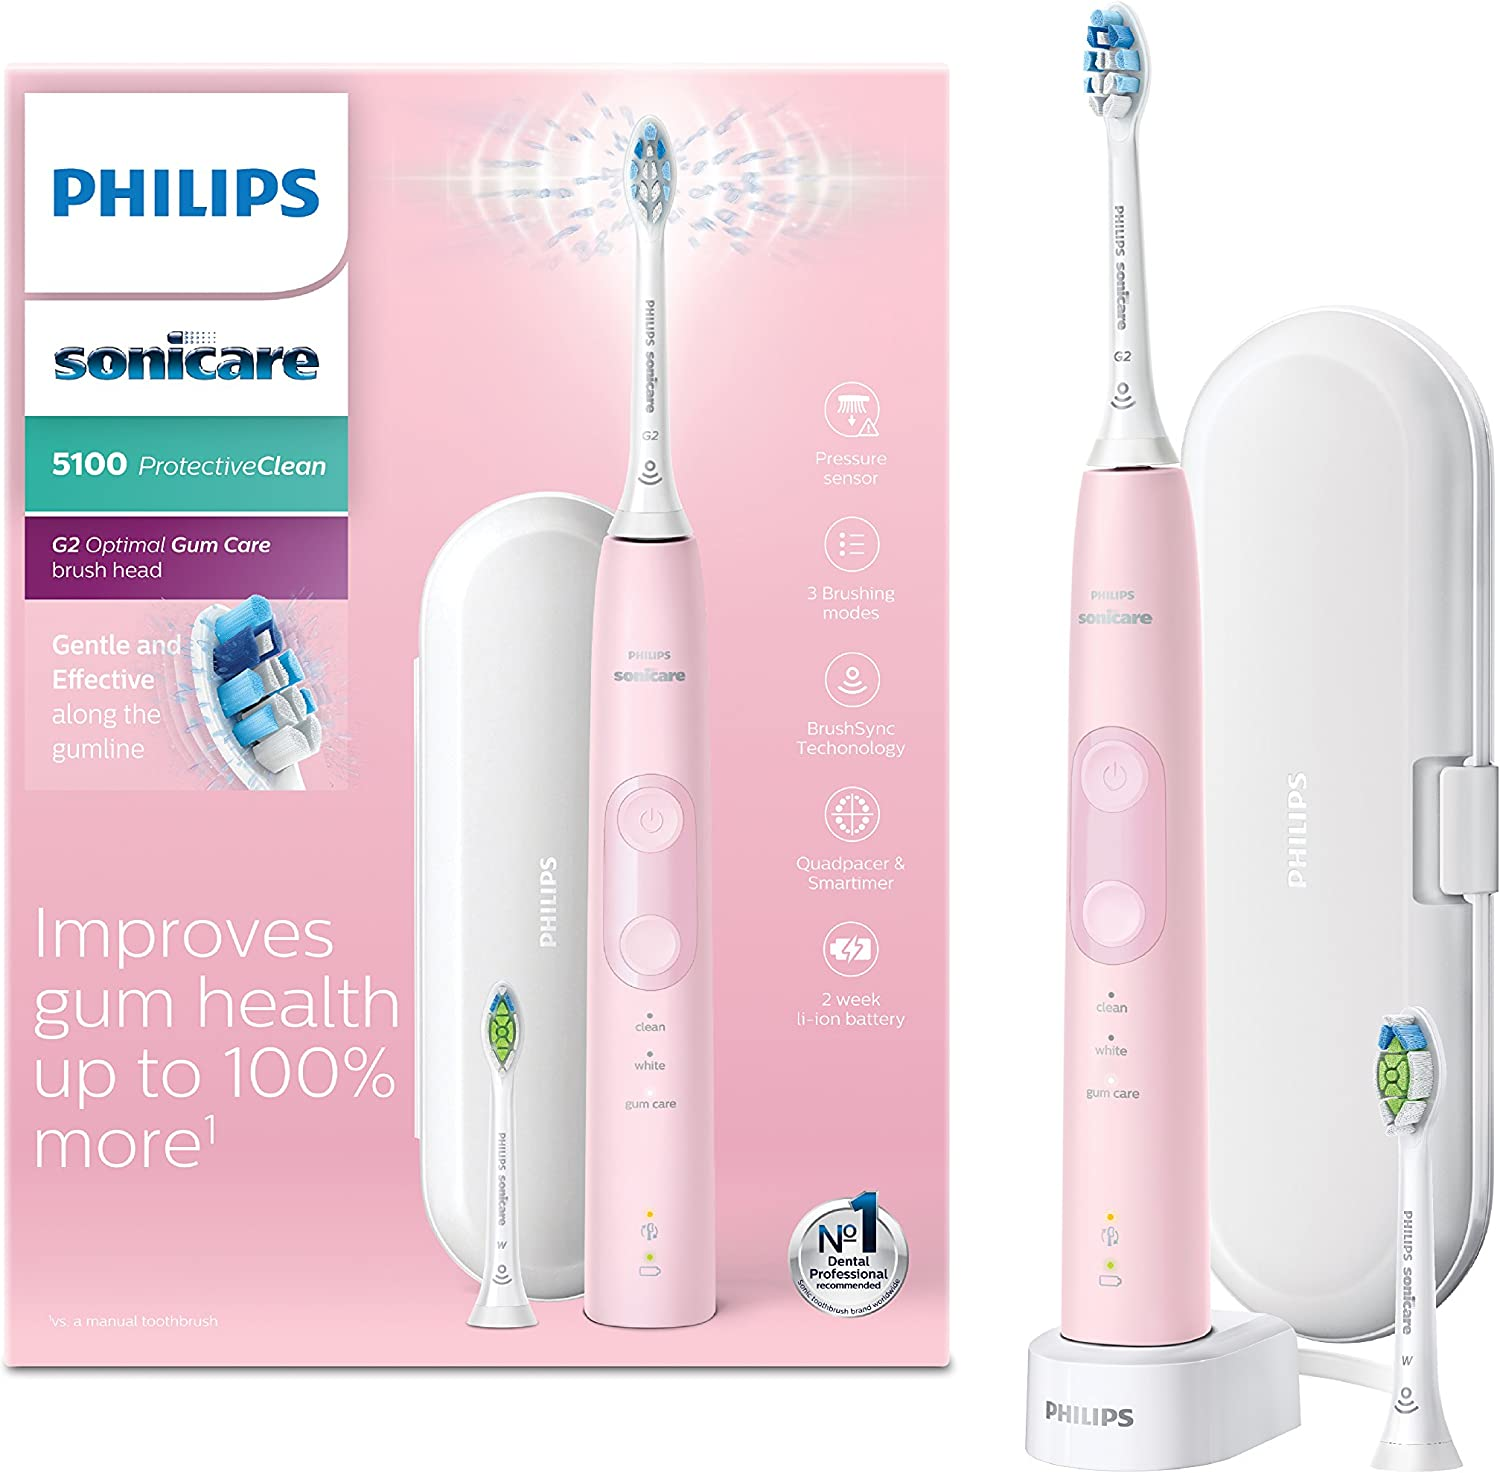 Philips Sonicare ProtectiveClean 5100 Electric Toothbrush with Travel Case, 3 x Cleaning Modes & Additional Toothbrush Head Pastel Pink (UK 2 pin